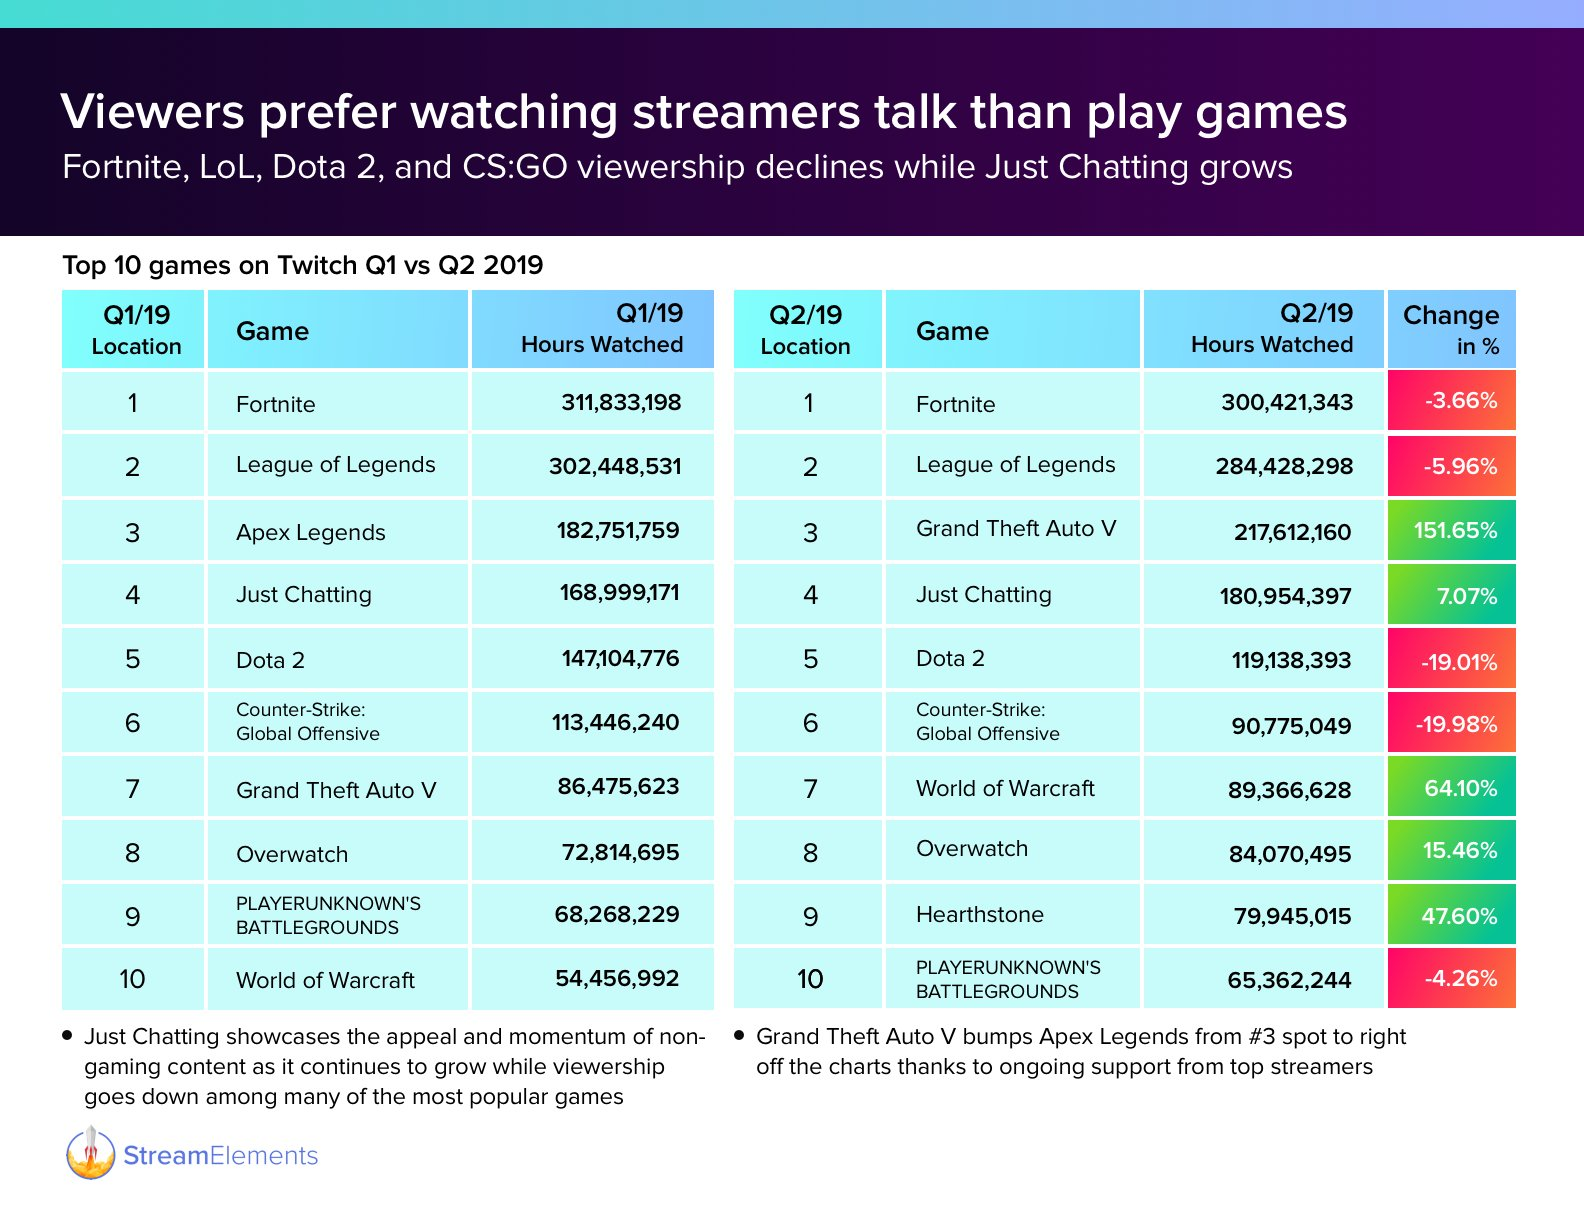 Apex Legends fell out of the Top 10 games on Twitch in Q2 2019 after taking third place in Q1.